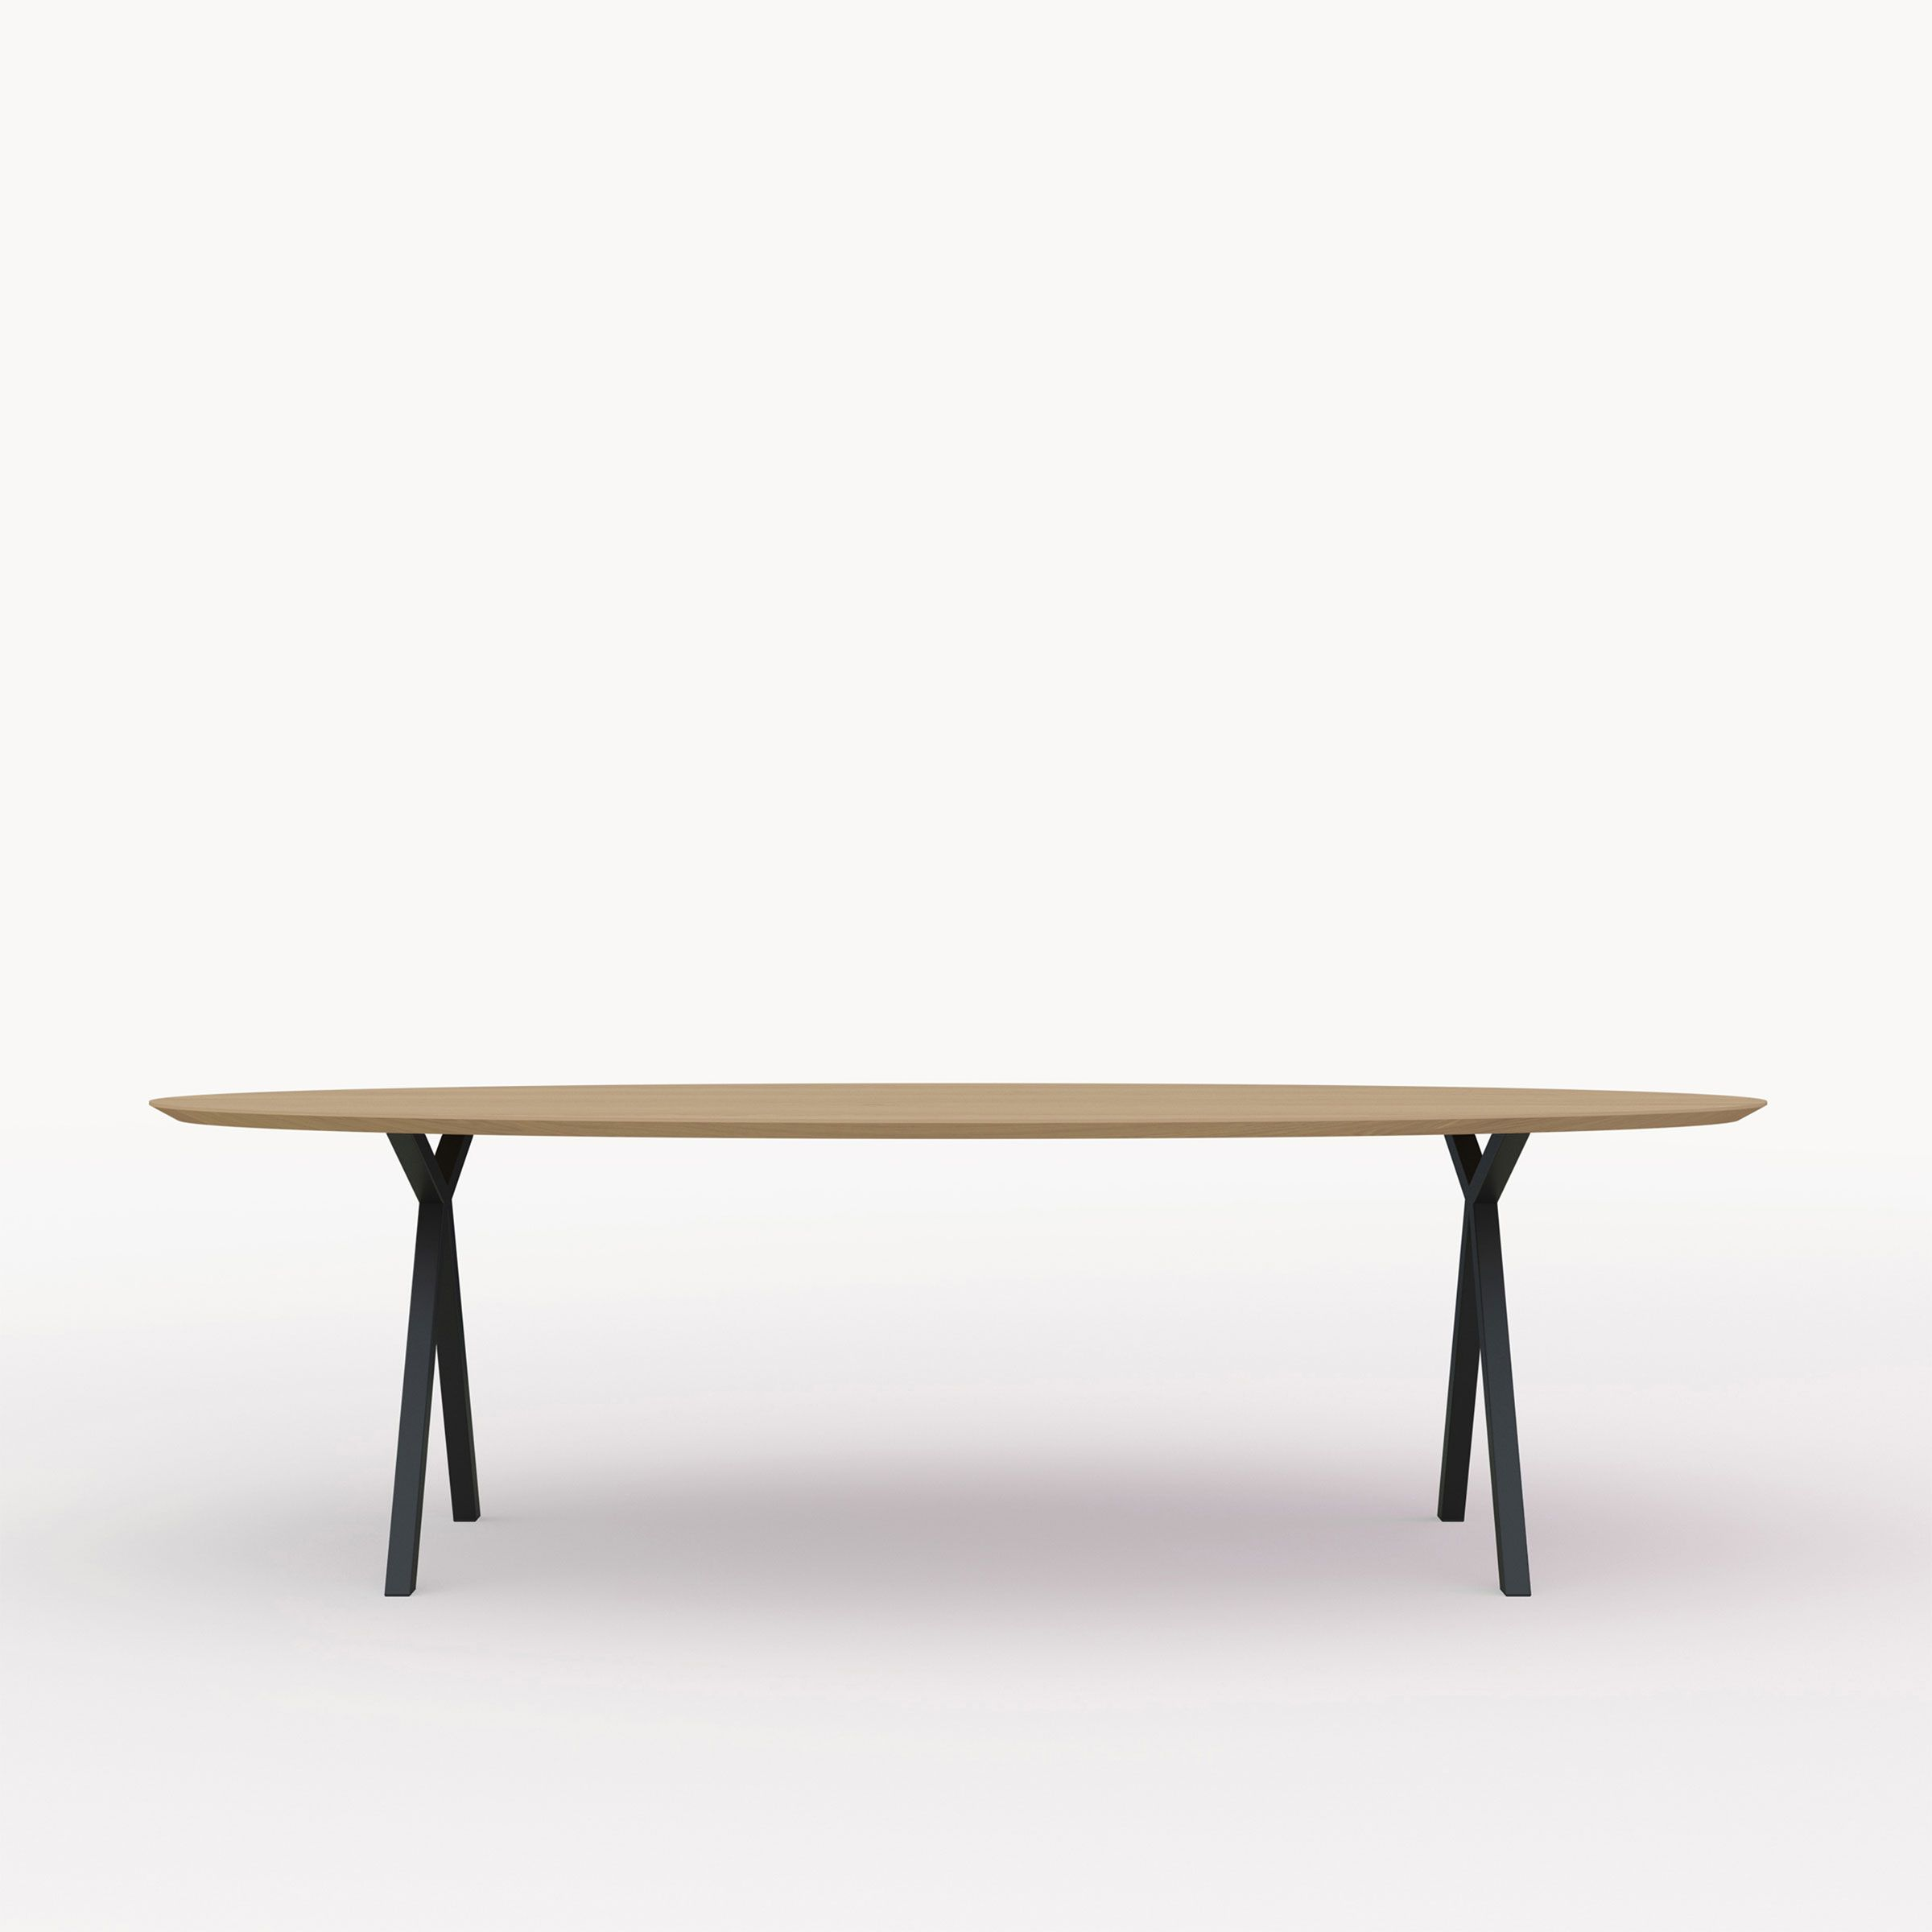 Design Tafel Ovaal Slim X-type Zwart Naturel olie wax STUDIO HENK ...